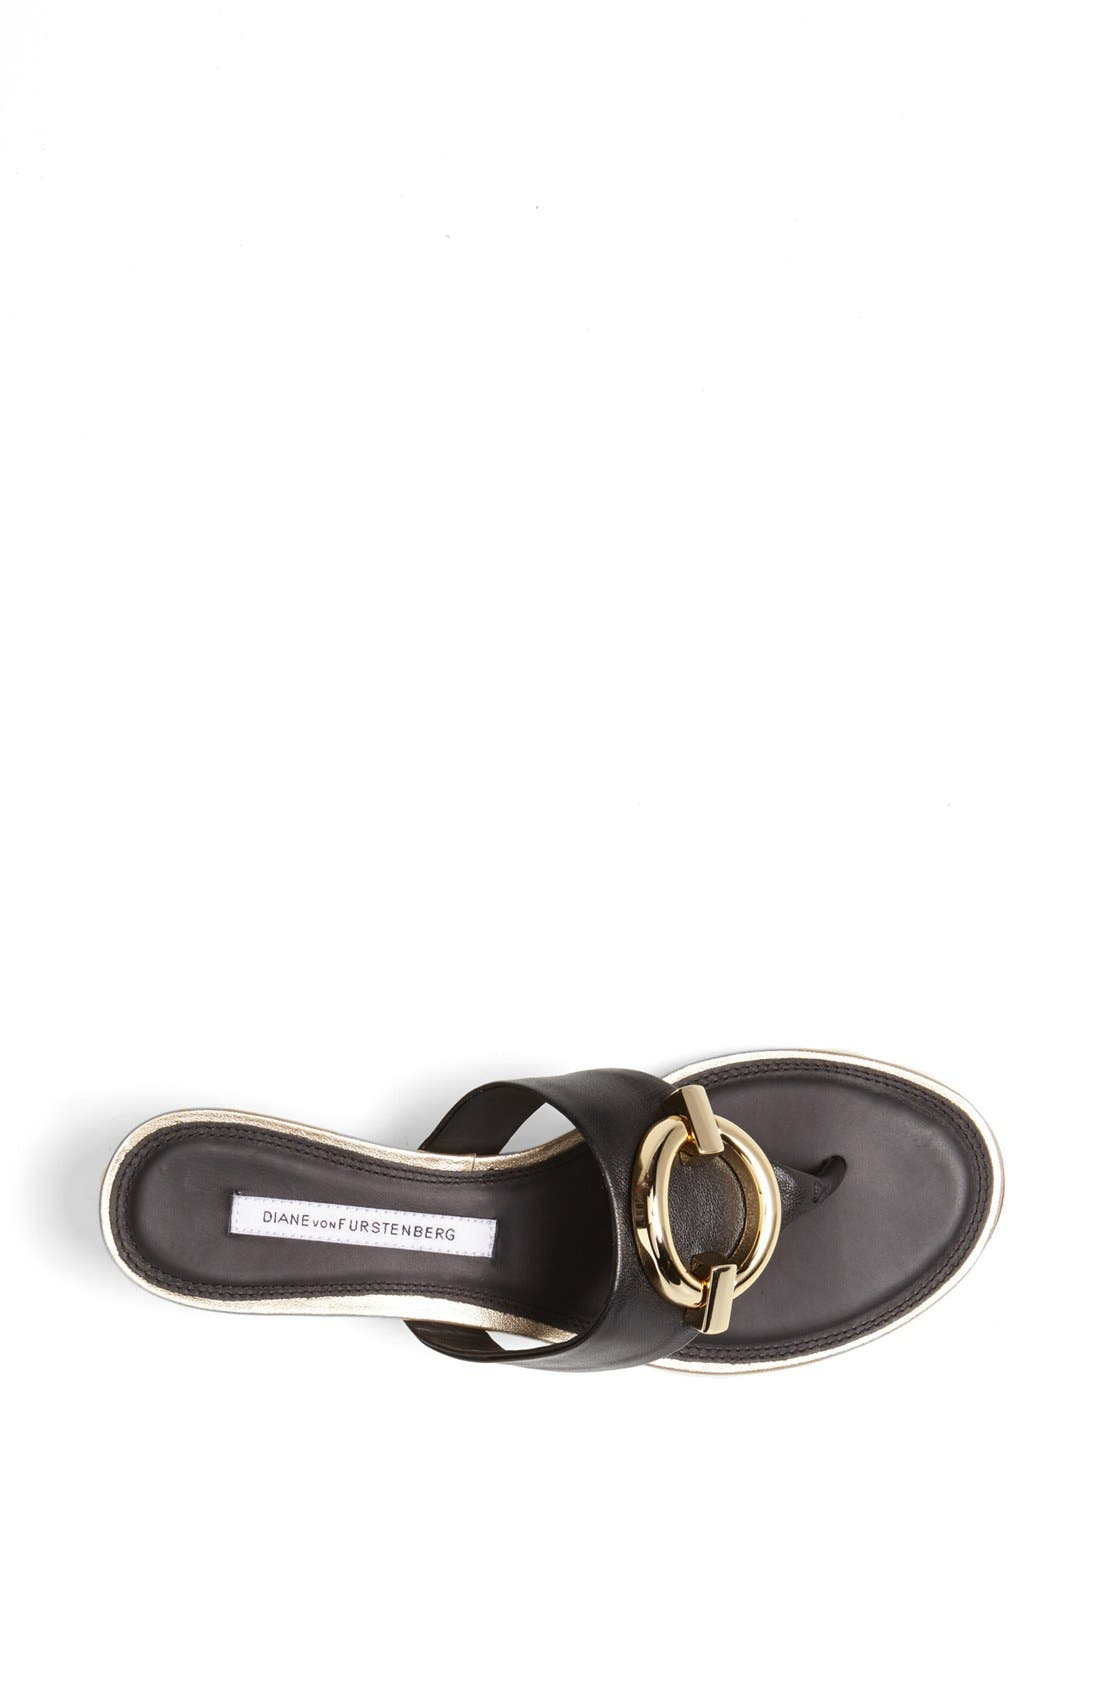 Alternate Image 3  - Diane von Furstenberg 'Tiles' Leather Sandal